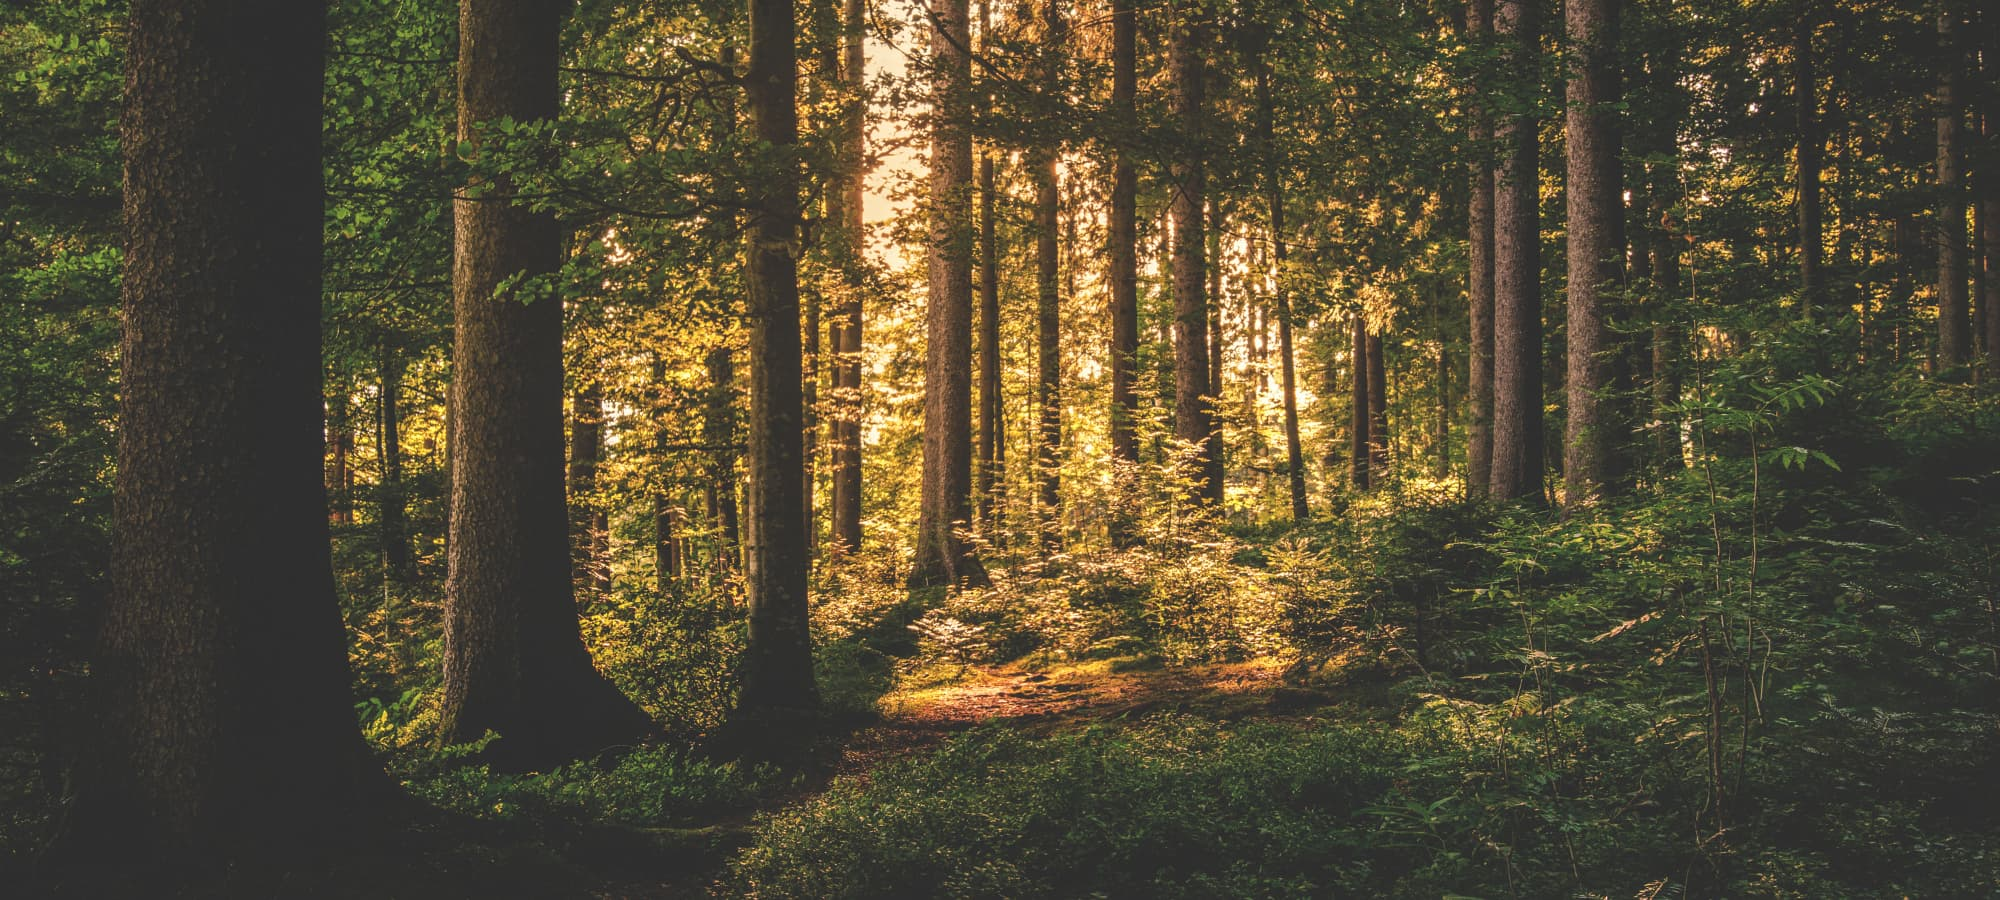 a lush forest at twilight